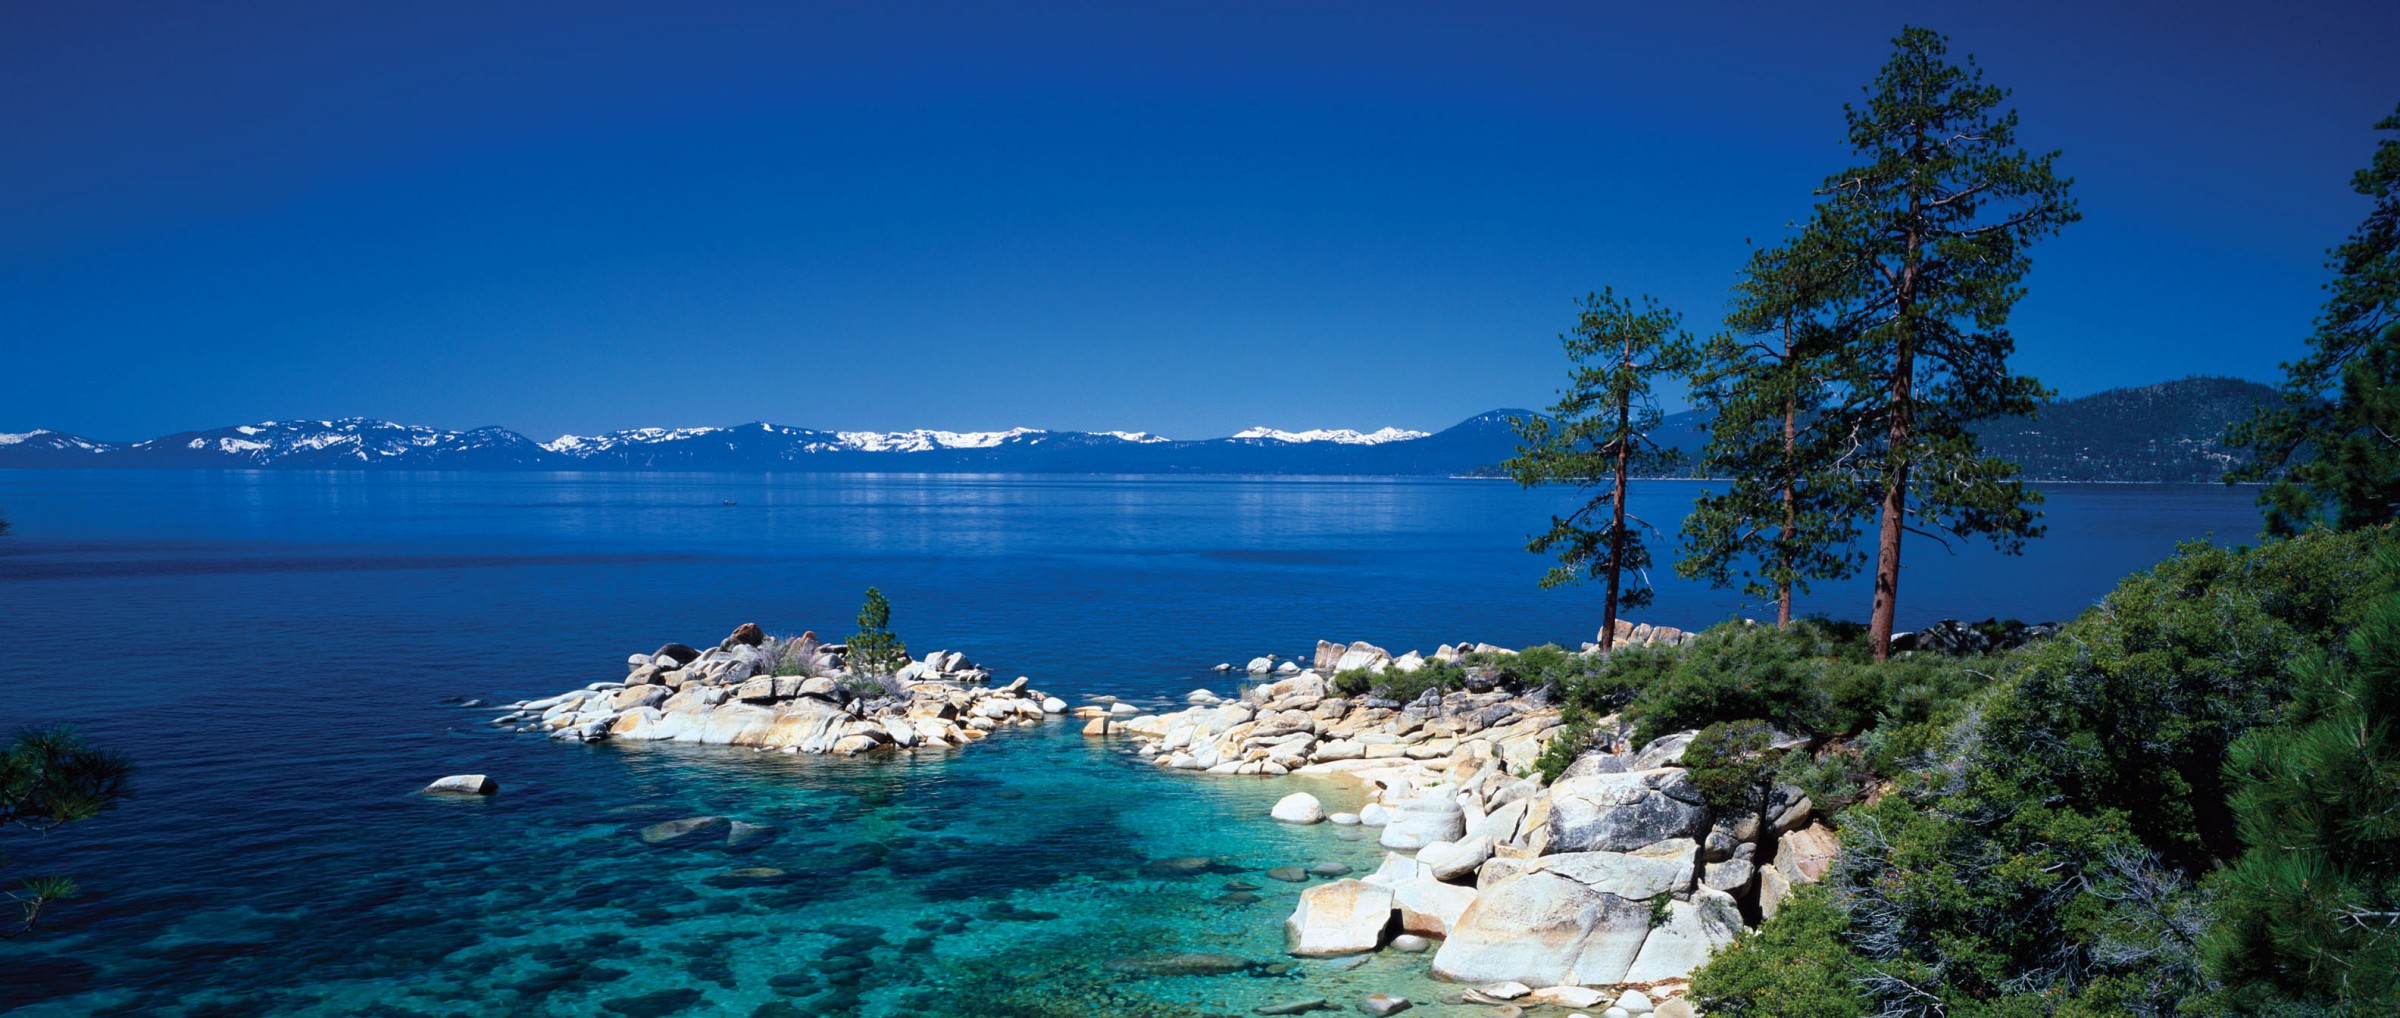 Lake Tahoe Large Fresh Water Lake In Sierra Nevada Of The United States (1)